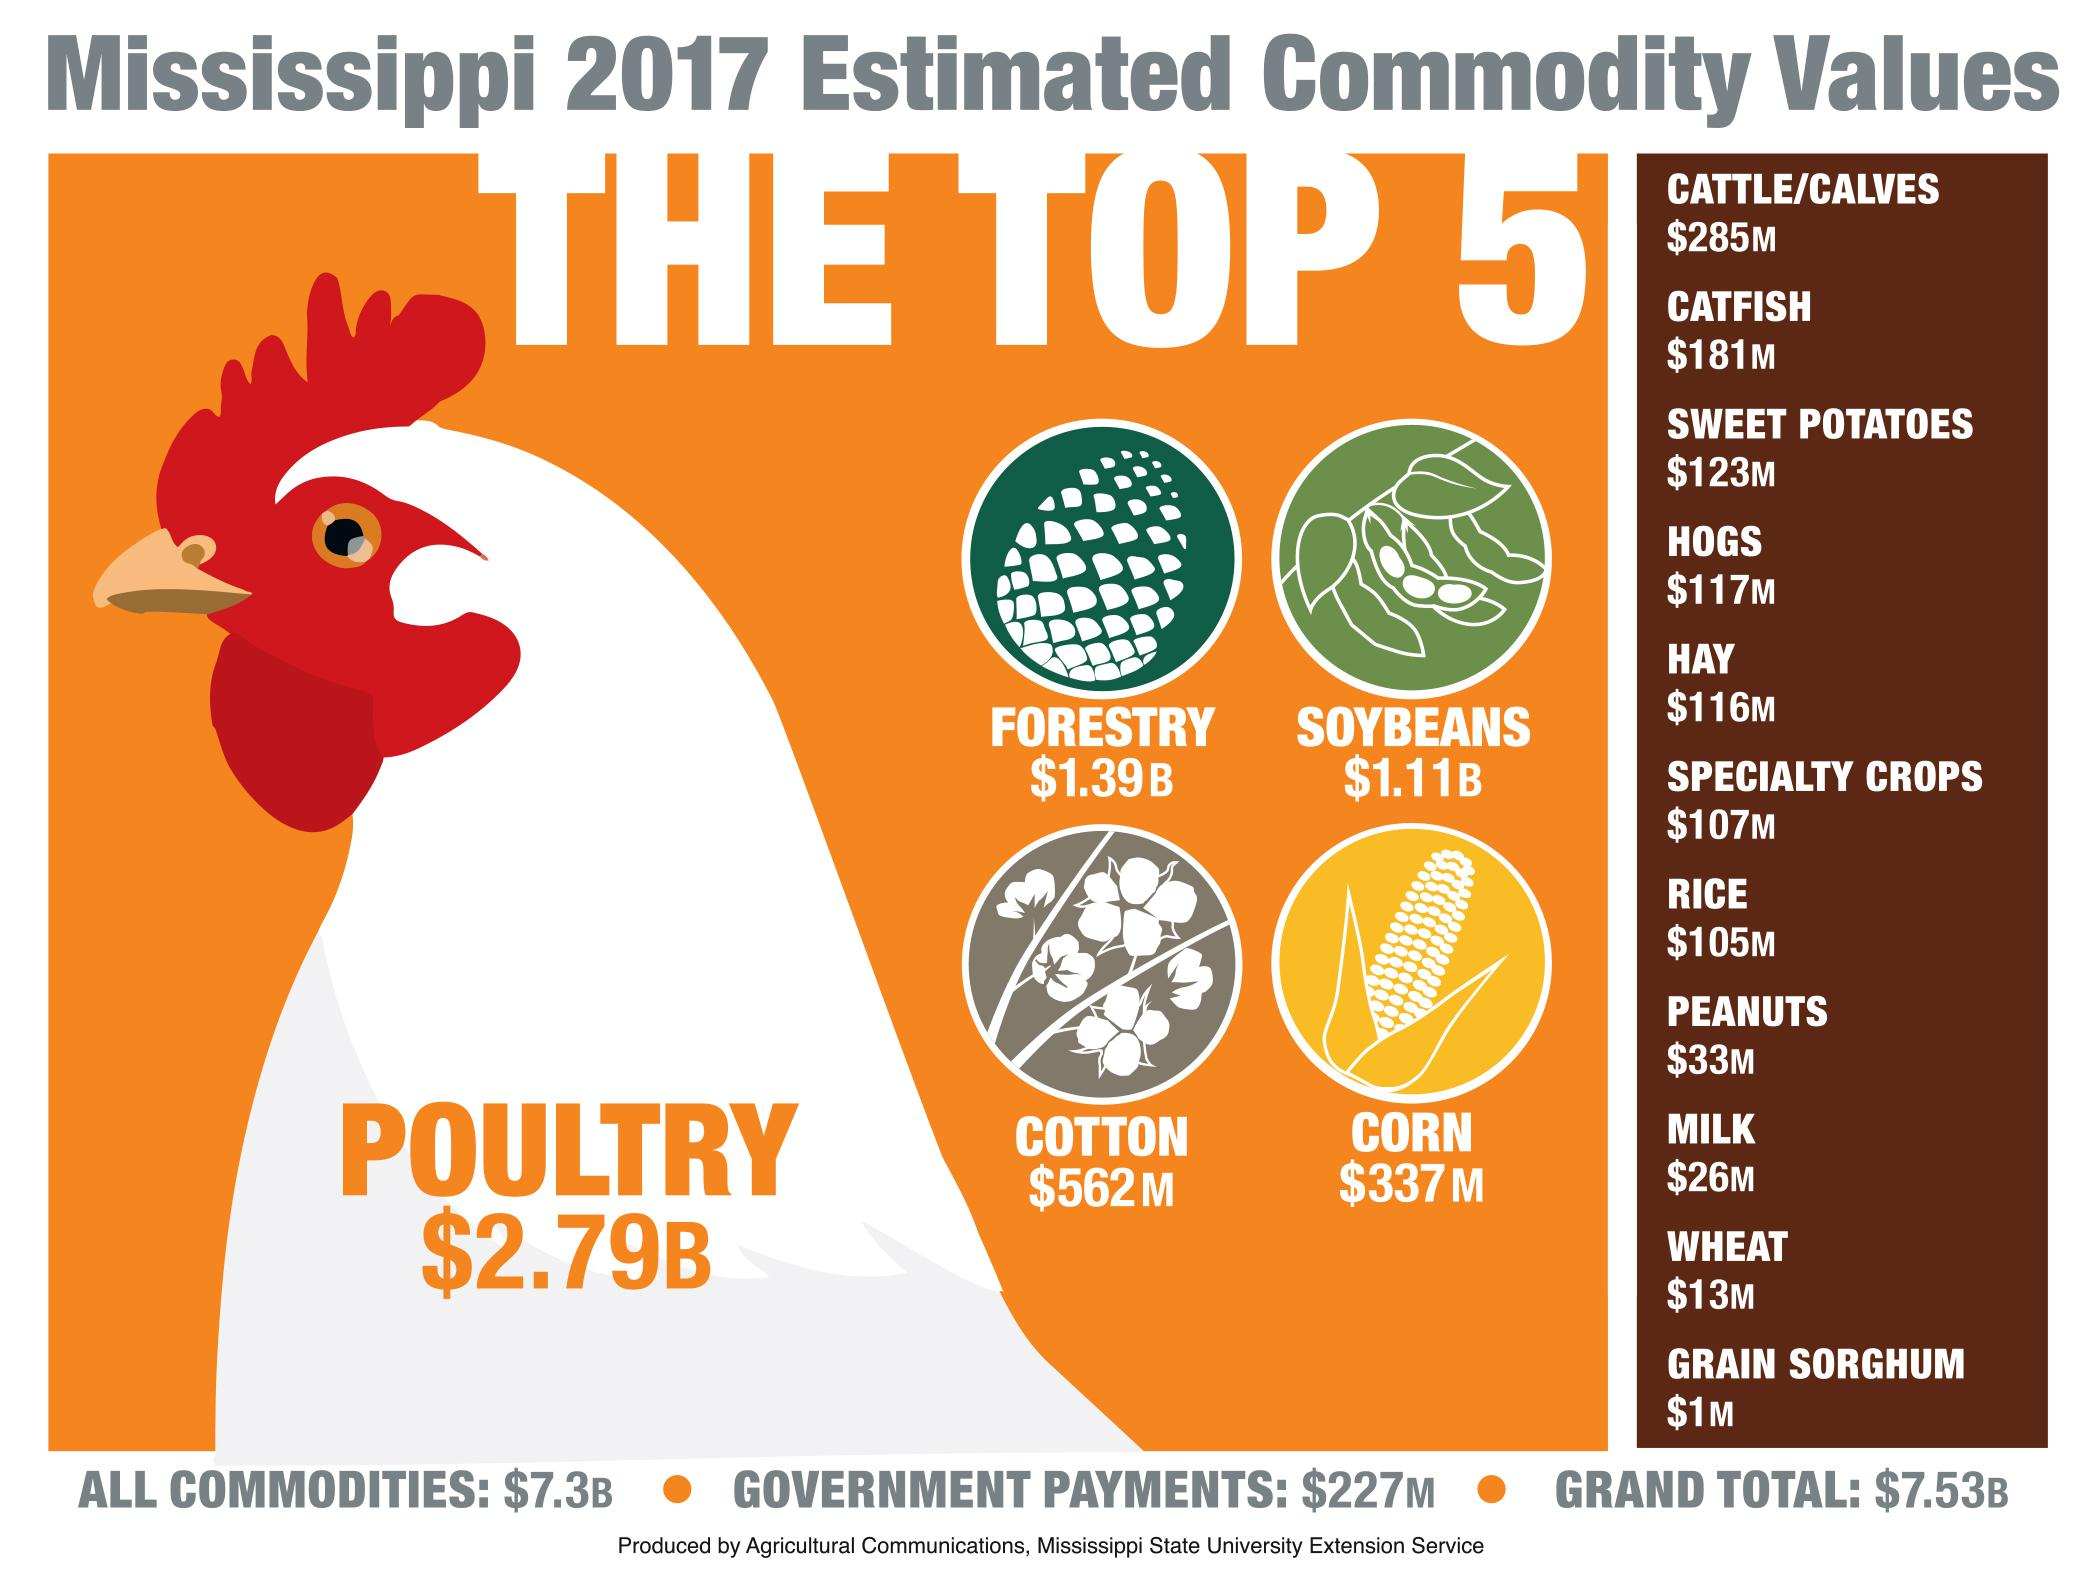 An artist representation of the top 5 agricultural commodities in Mississippi with a drawing of a large white chicken dominating the image.